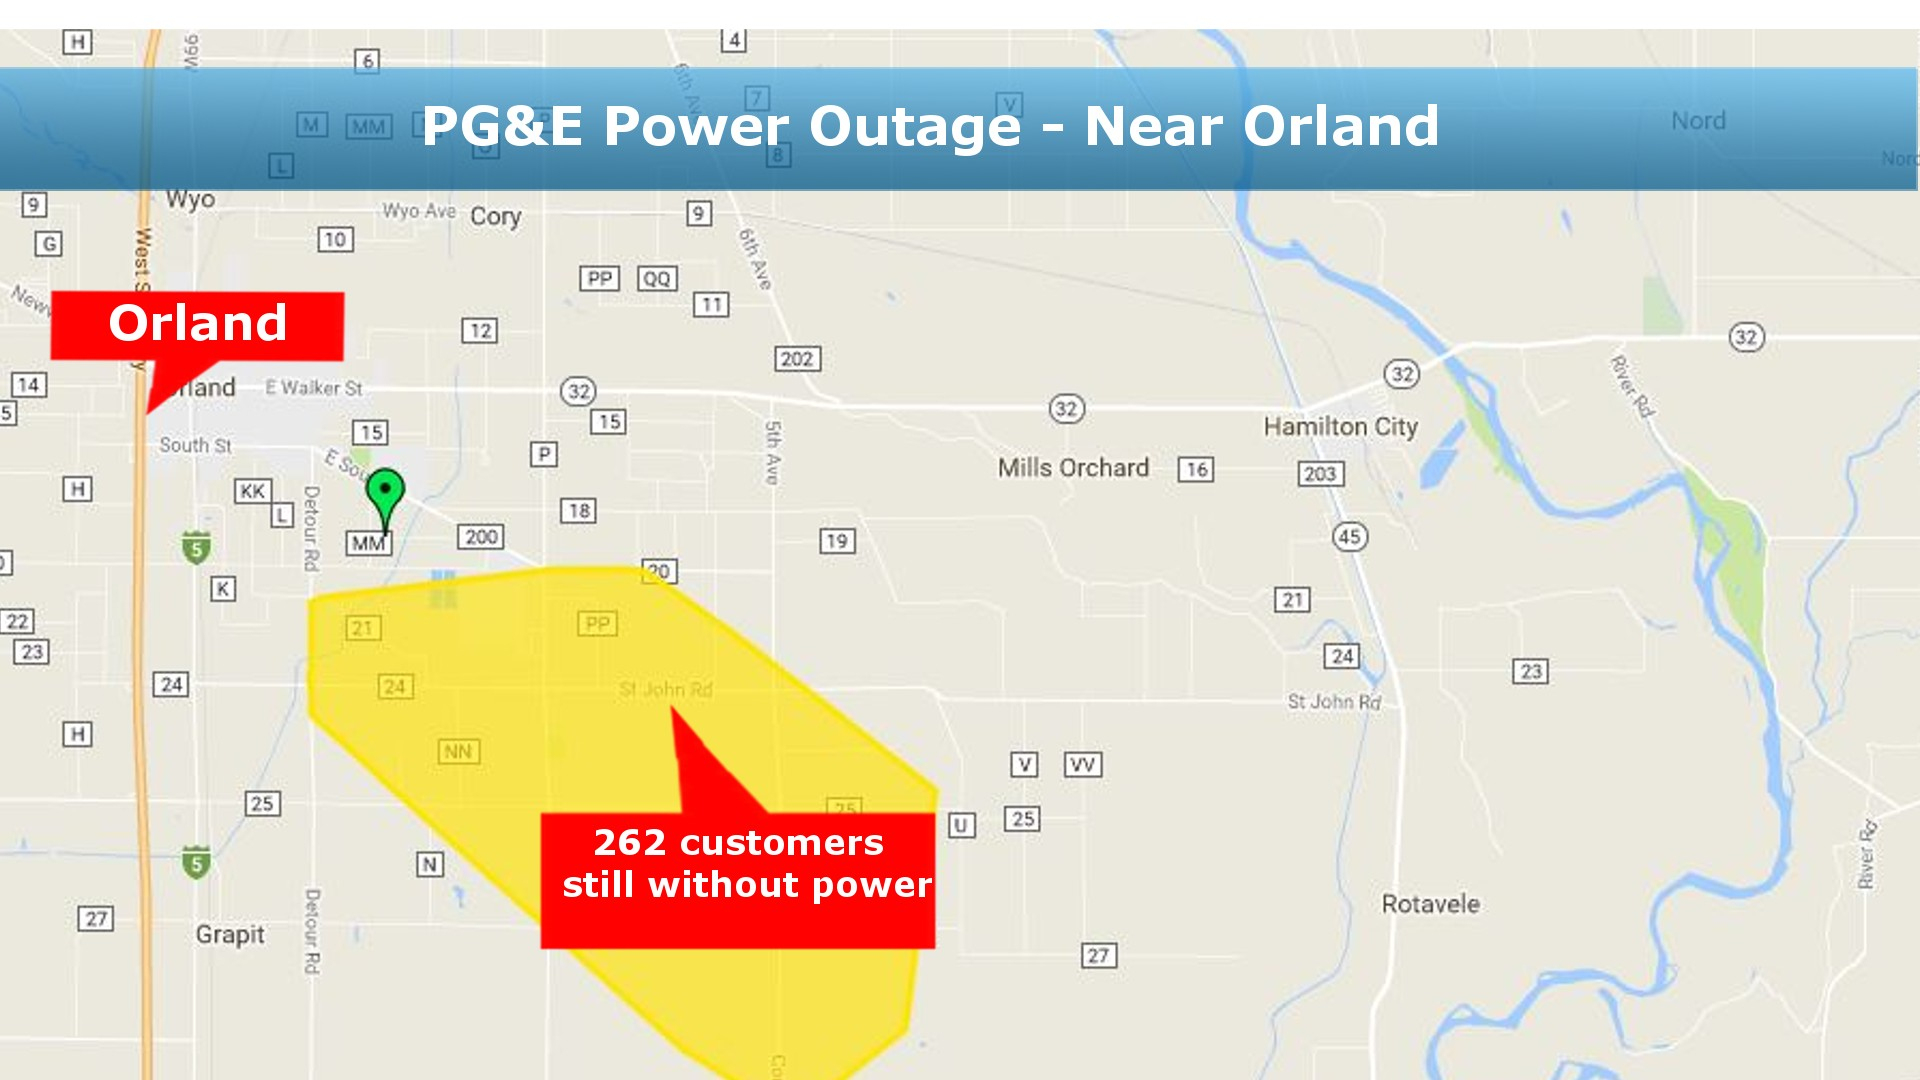 Pge Outage Map Fabulous Pg&e Power Outage Map - Wakefulnessmagicpill - Pge Outages Map California